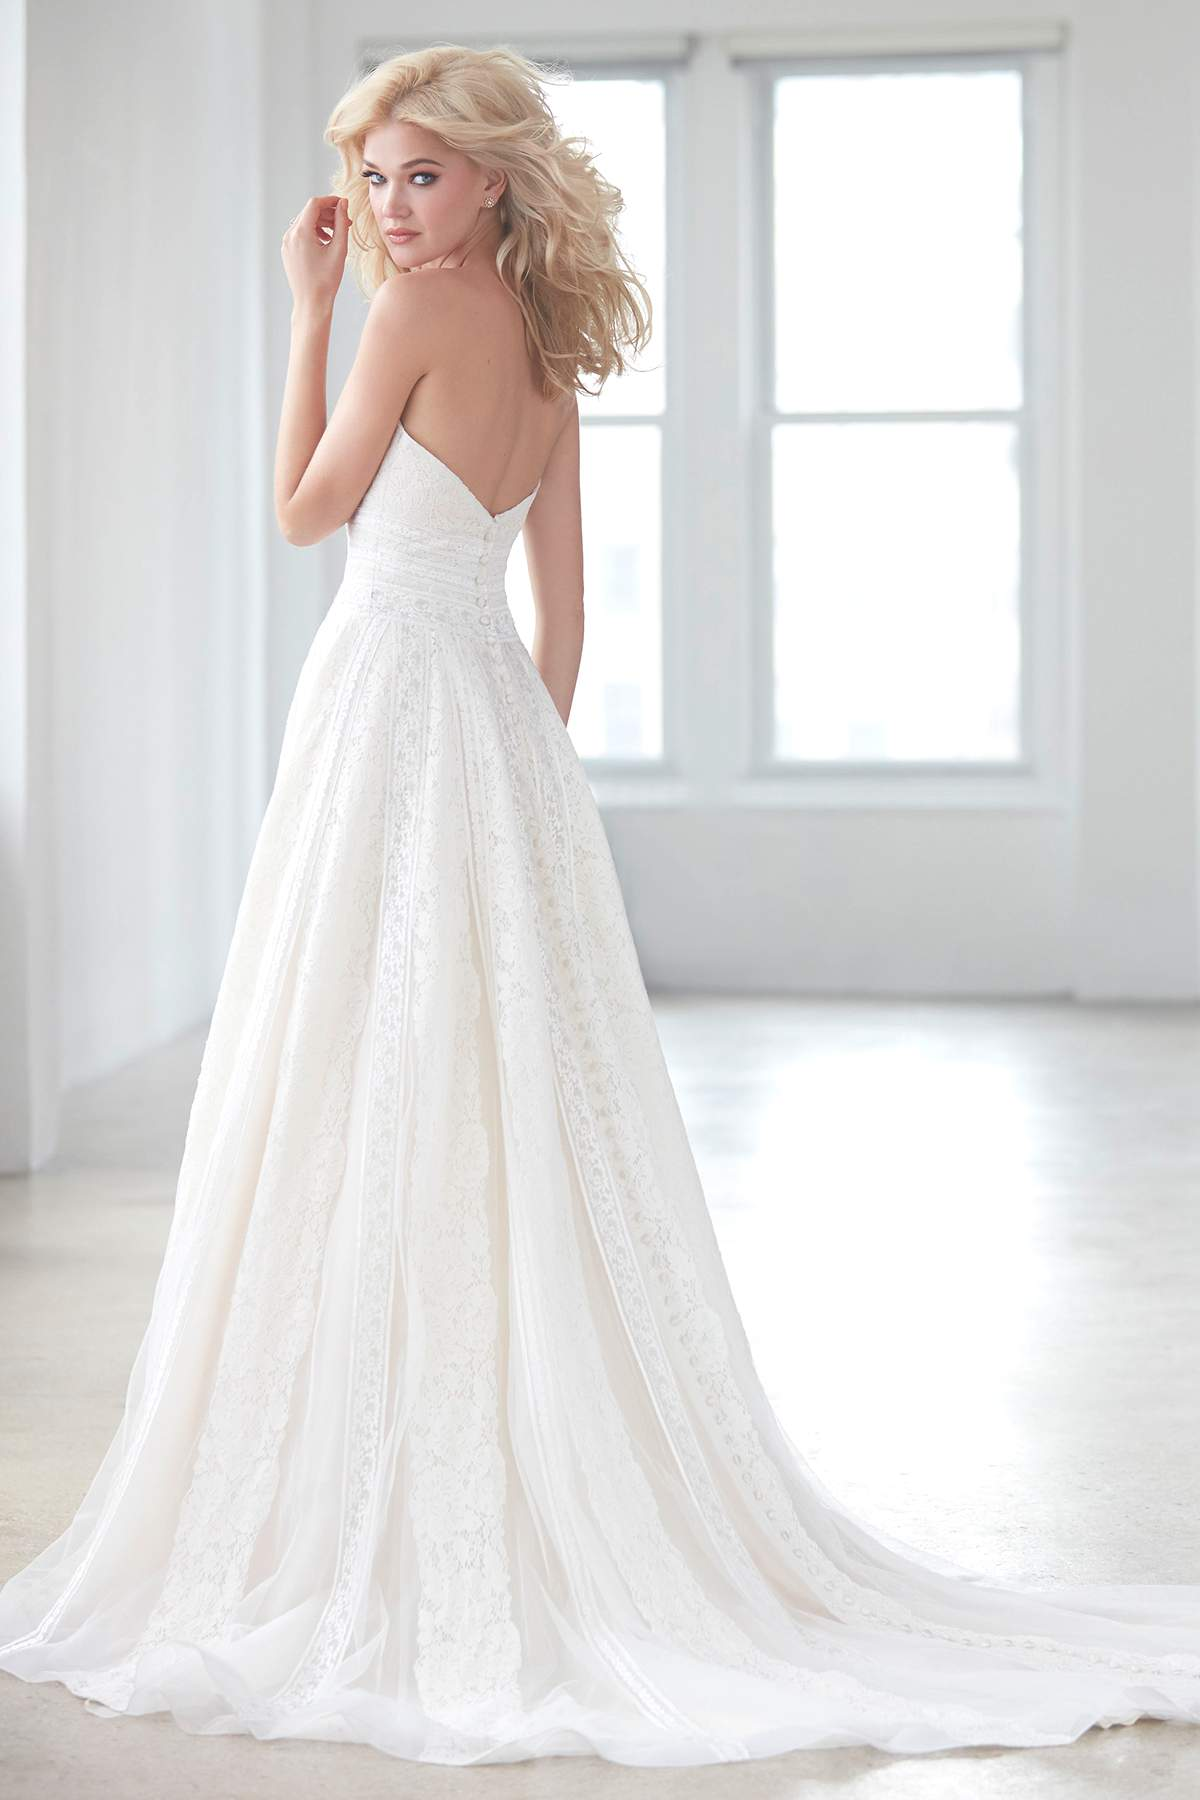 Bug Fix: 220 Madison James Wedding Dress At Websimilar.org